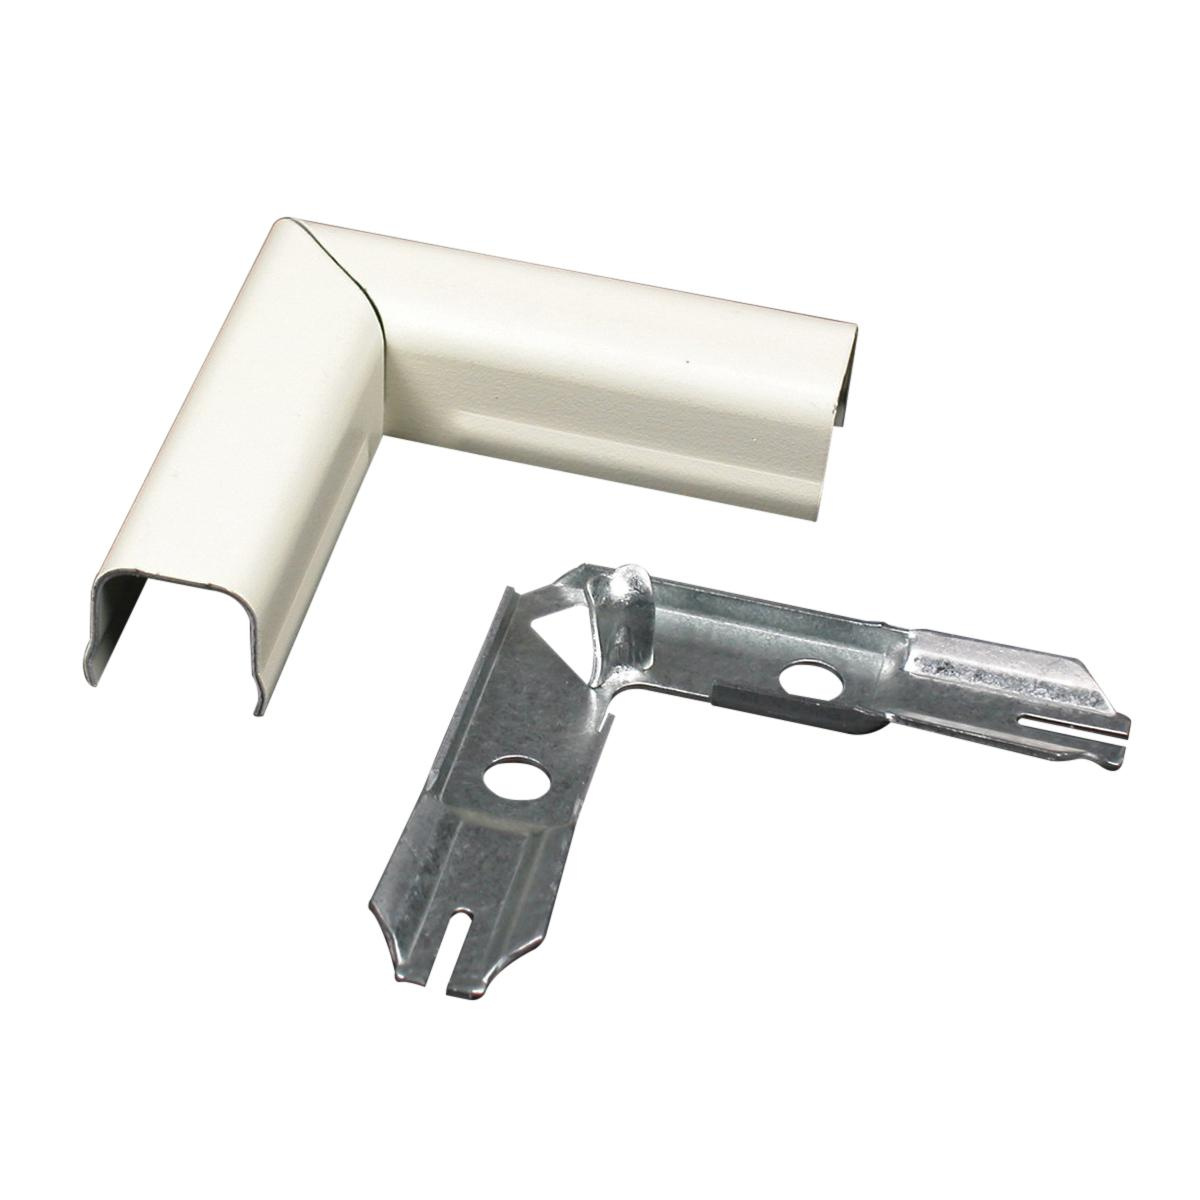 Wiremold 711wh Flat Elbow Fitting Steel White For Use With 700 Surface Wiring Conduit 700reg Series Single Channel